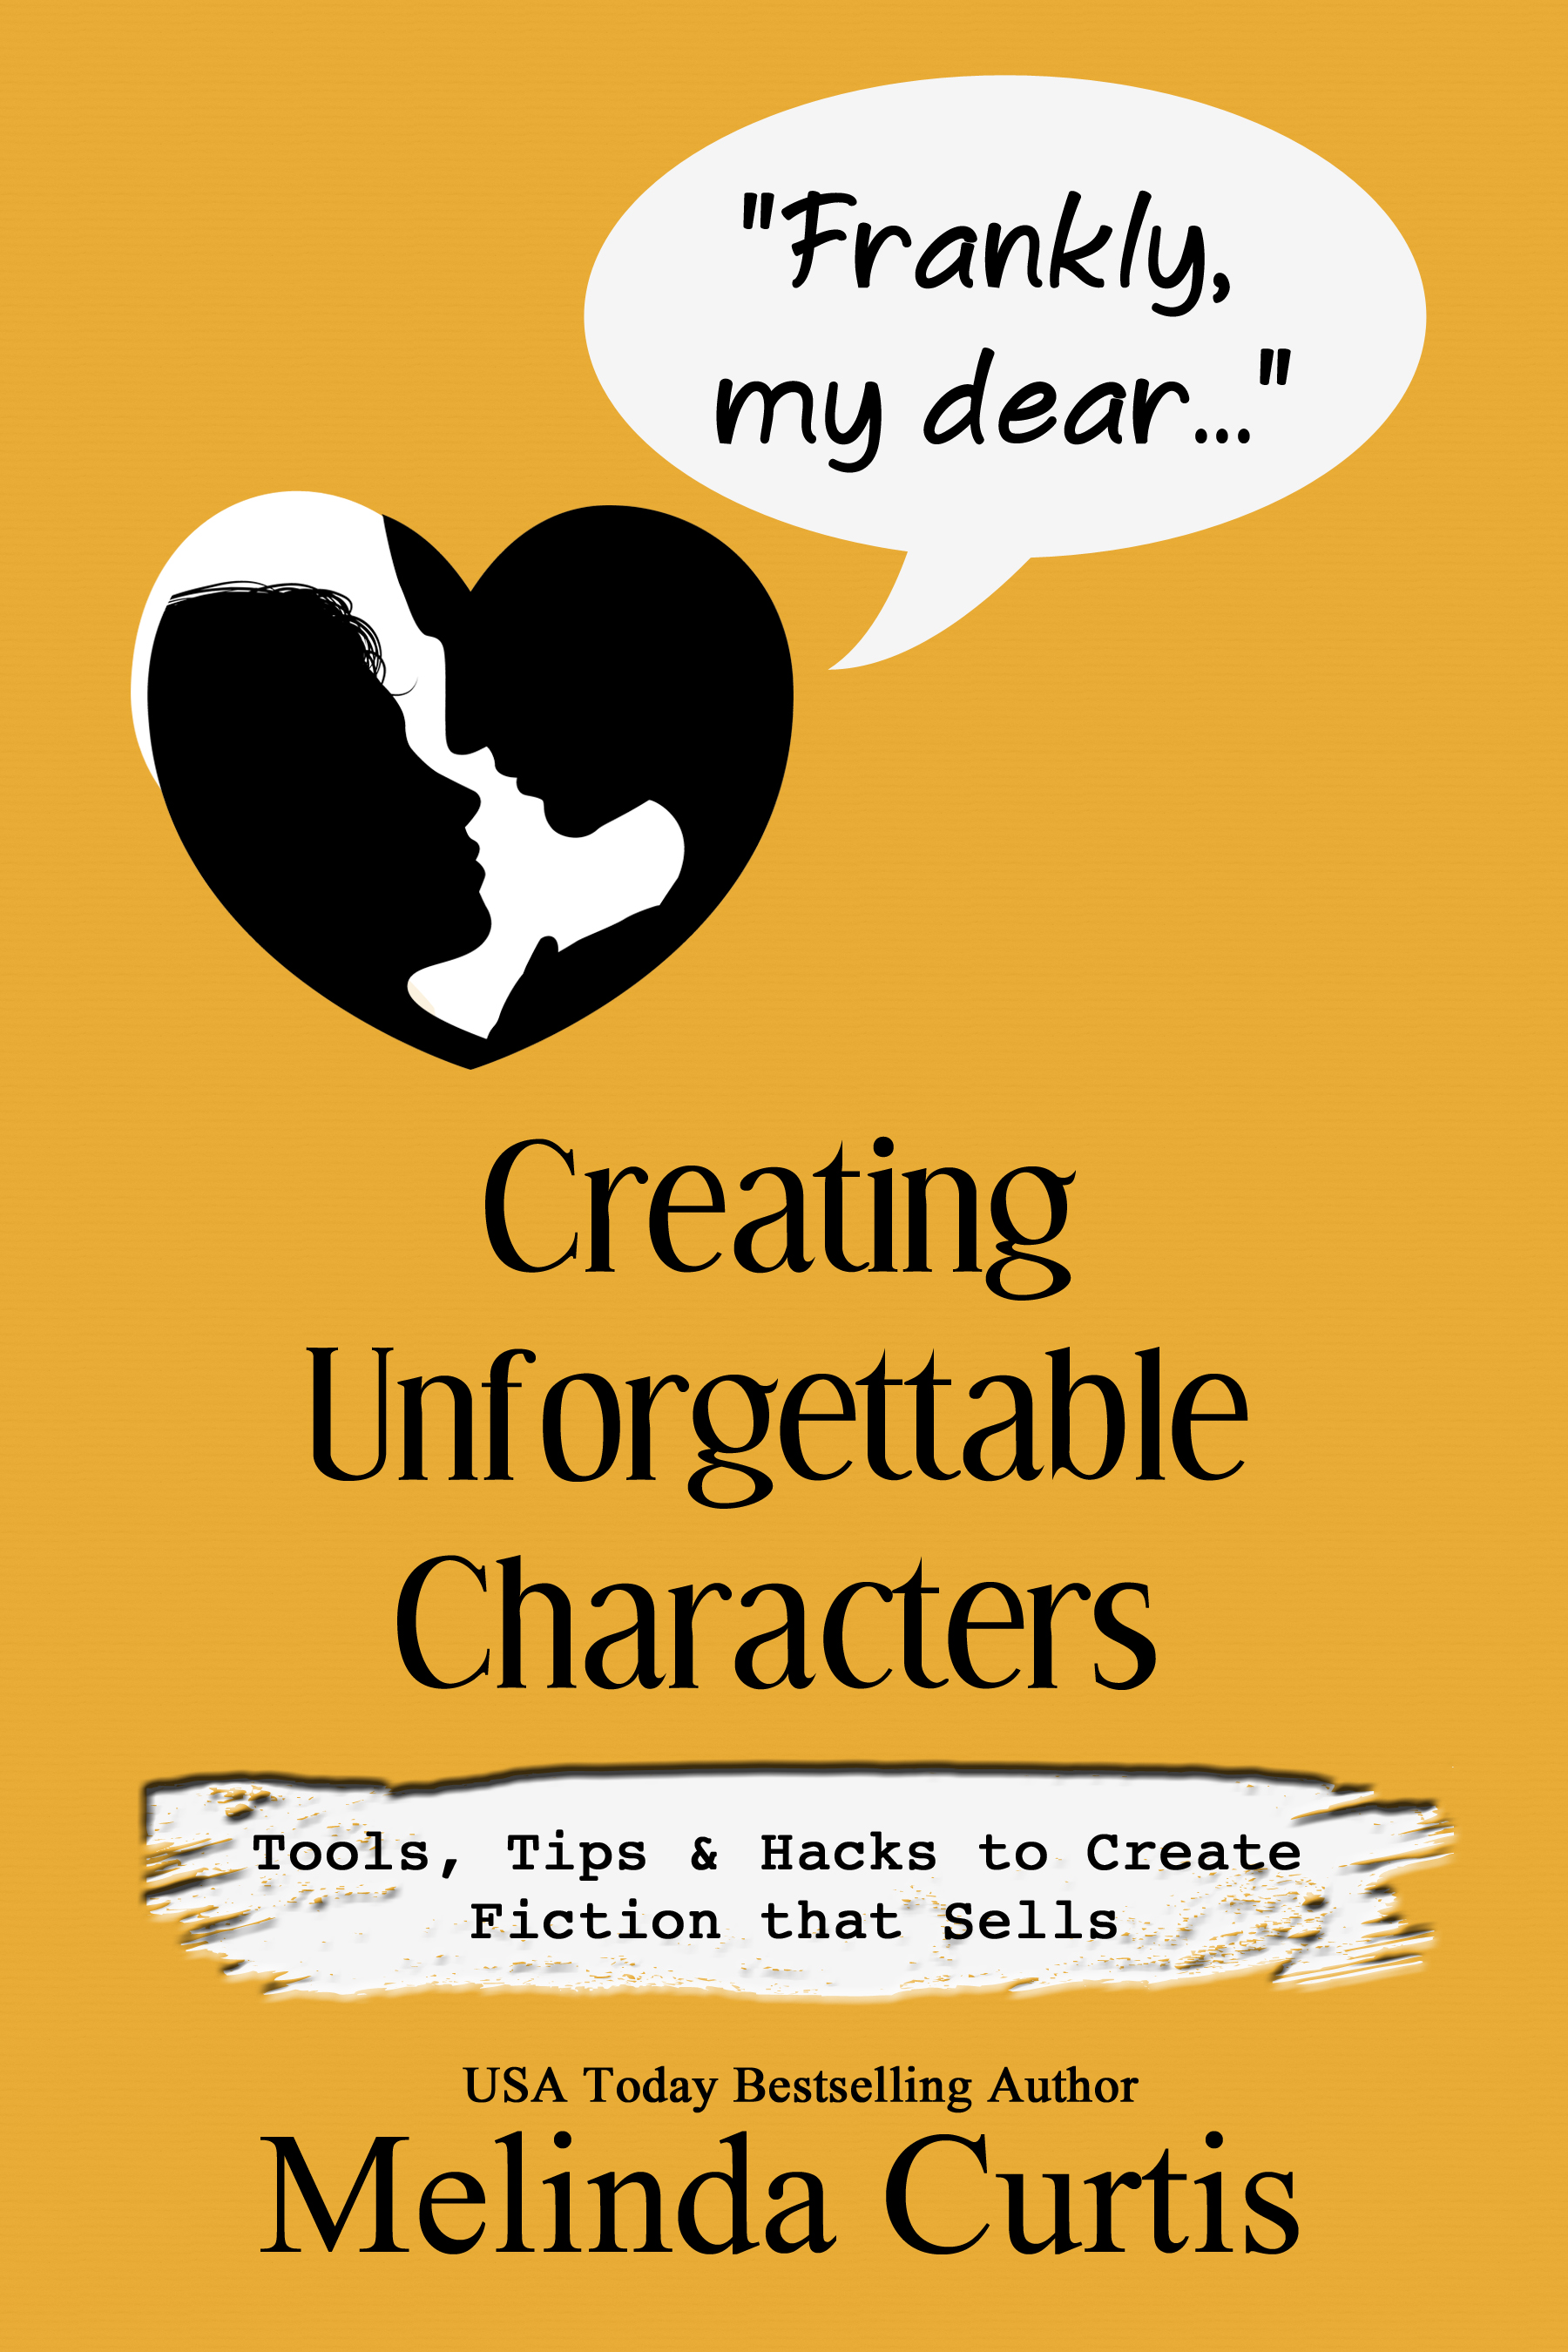 Frankly, my dear... Creating Unforgettable Characters - It doesn't matter if your writing style is planned, spontaneous, or somewhere in between--it's the character and conflict that sells! Character and conflict hook in studio execs, hold an editor's attention, and draw in readers, compelling them to turn the page. So what is the secret sauce? How can you hack into believable and compelling characters? By using a tried and true psychological principle adapted for writers.In this book, you'll find the basics of character and conflict, along with a multi-faceted psychological principle that can be used to create characters who need to grow and change. Inside are numerous tips to create and deepen character and conflict from the beginning of your story to the end. You'll discover hacks to give your characters depth and provide them with behavioral bumpers so they act consistently throughout your story, until they grow and change in an emotionally satisfying finale. As an added bonus, there are over 100 examples from movies and television that illustrate how to use each principle. That means adding this book to your writing toolbox will help you sell to editors and studio execs, and create compelling reads that bring audiences back for more. Available in print (Amazon) and digital.